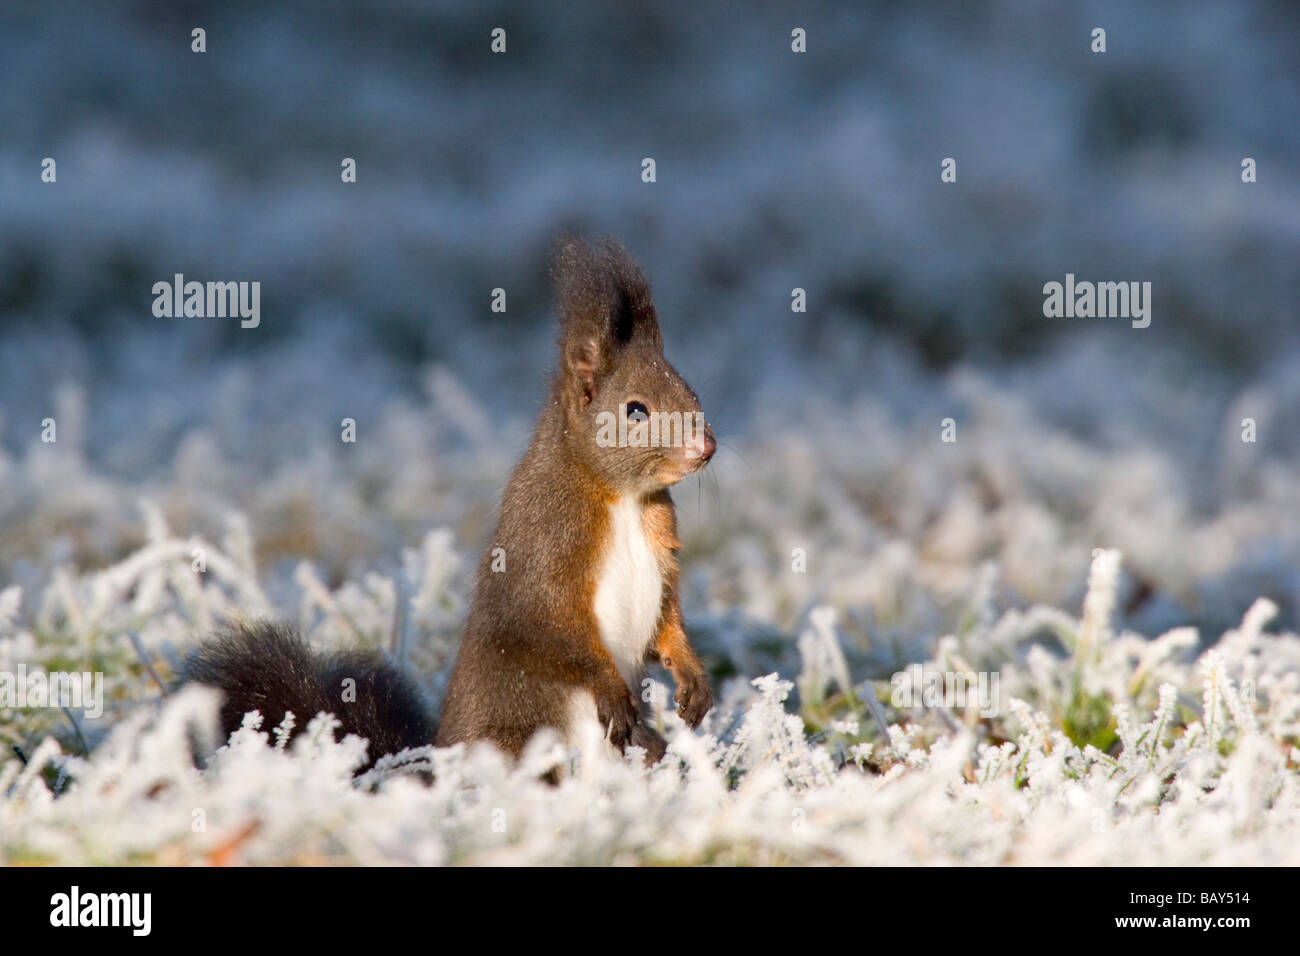 Red Squirrel at whitefrost, winter, Bavaria, Germany, Sciurus vulgaris Stock Photo